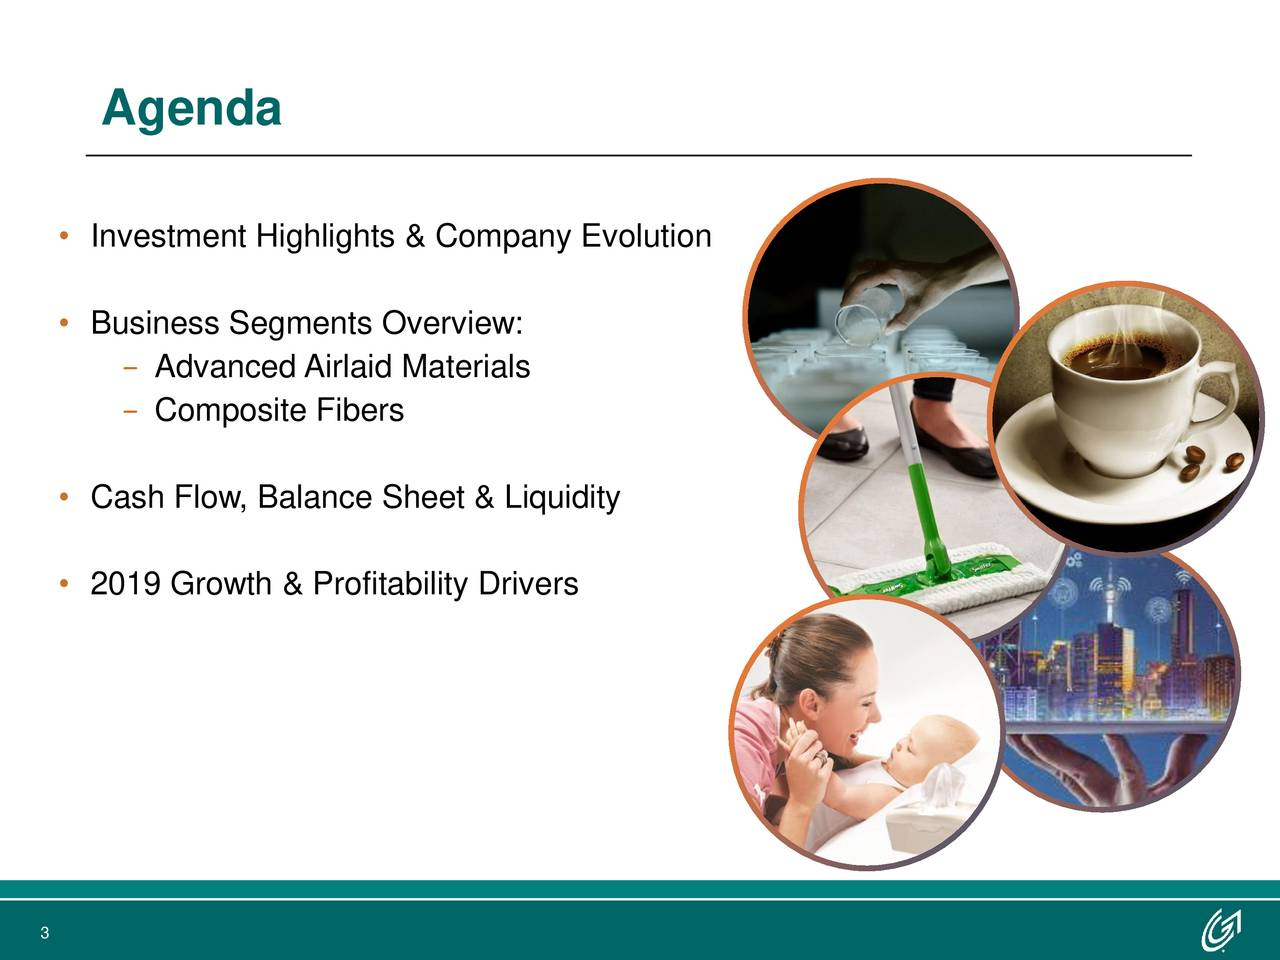 • Investment Highlights & Company Evolution • Business Segments Overview: − Advanced Airlaid Materials − Composite Fibers • Cash Flow, Balance Sheet & Liquidity • 2019 Growth & Profitability Drivers 3